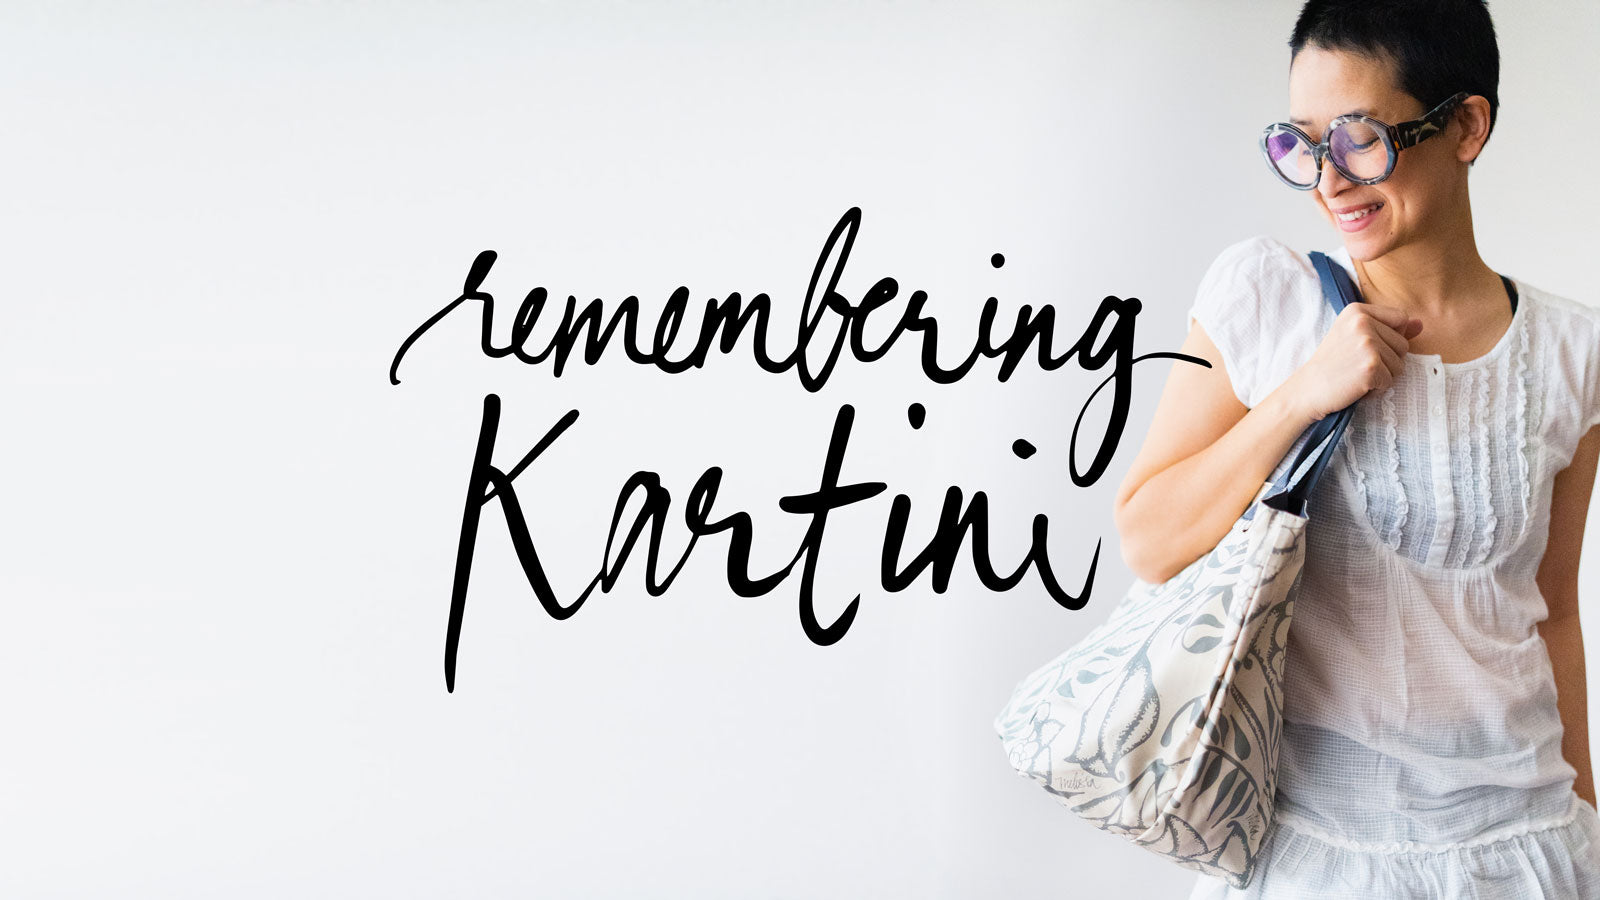 Remembering Kartini